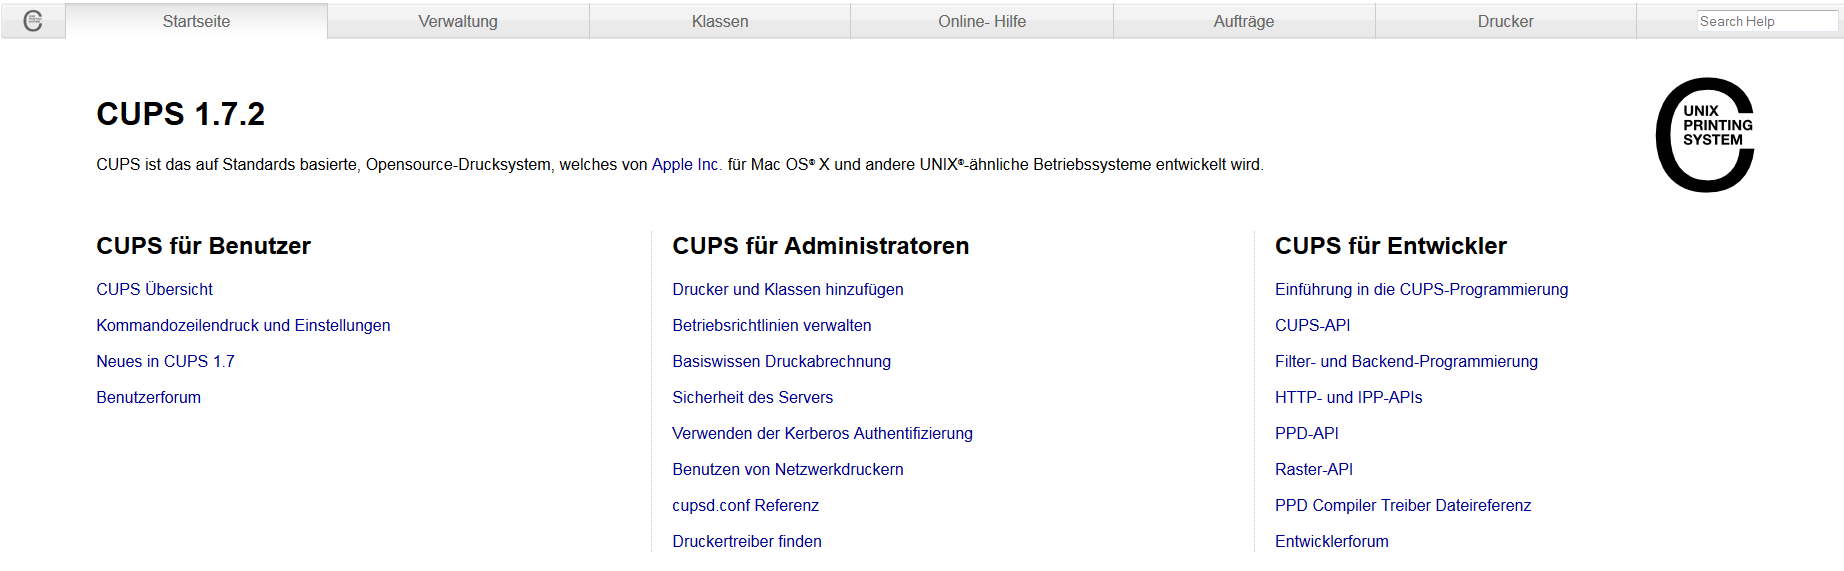 GateWebinterfaceDruckeradministration